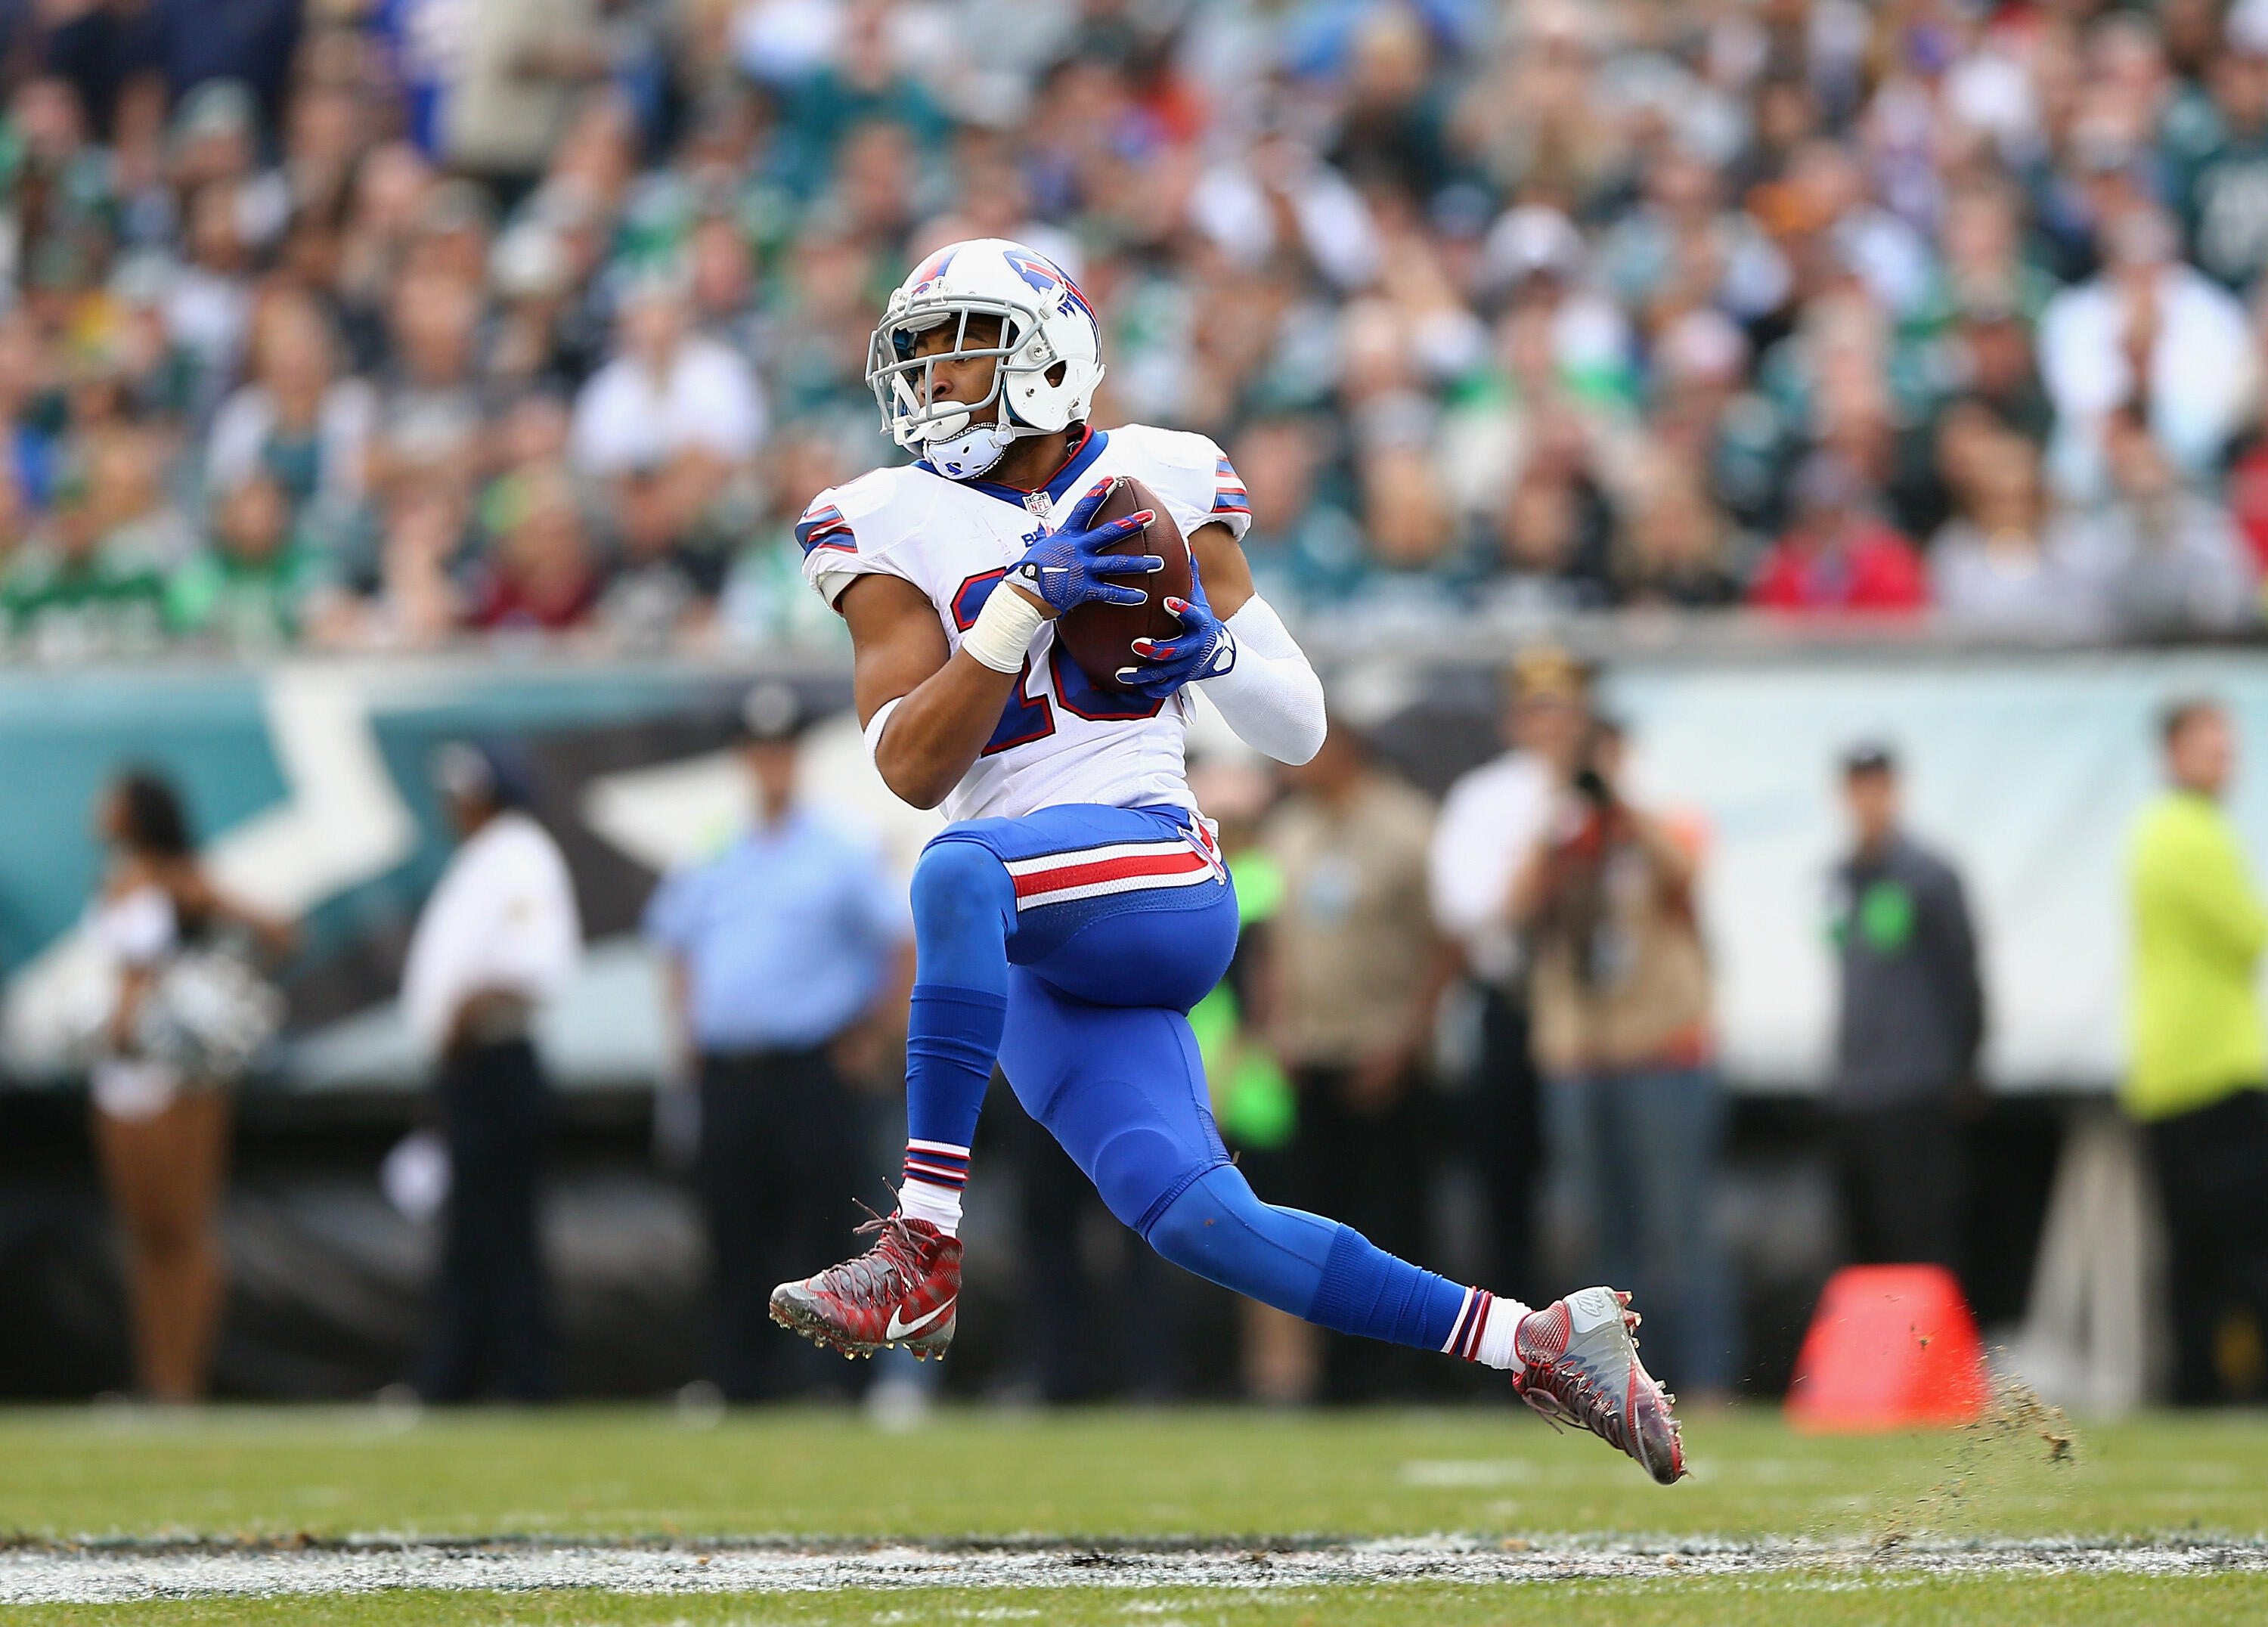 PHILADELPHIA, PA - DECEMBER 13:  Robert Woods #10 of the Buffalo Bills catches the ball against the Philadelphia Eagles during the first quarter at Lincoln Financial Field on December 13, 2015 in Philadelphia, Pennsylvania.  (Photo by Elsa/Getty Images)